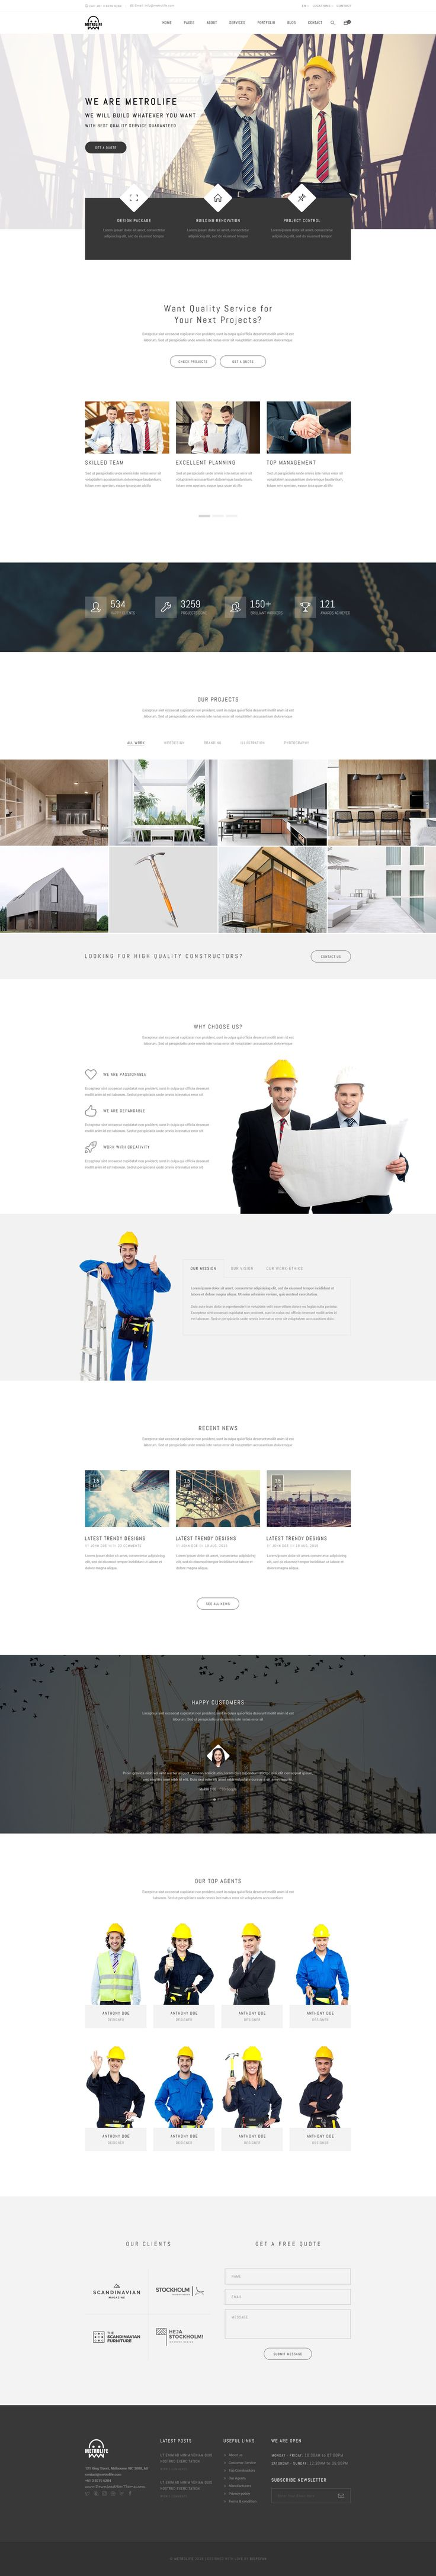 Metrolife is a Responsive, Minimal, Creative and Professional Website Template for any type of Corporate, Business, Magazine, Creative, Portfolio, E-Commerce, #Construction, Medical, Real Estate #Websites.